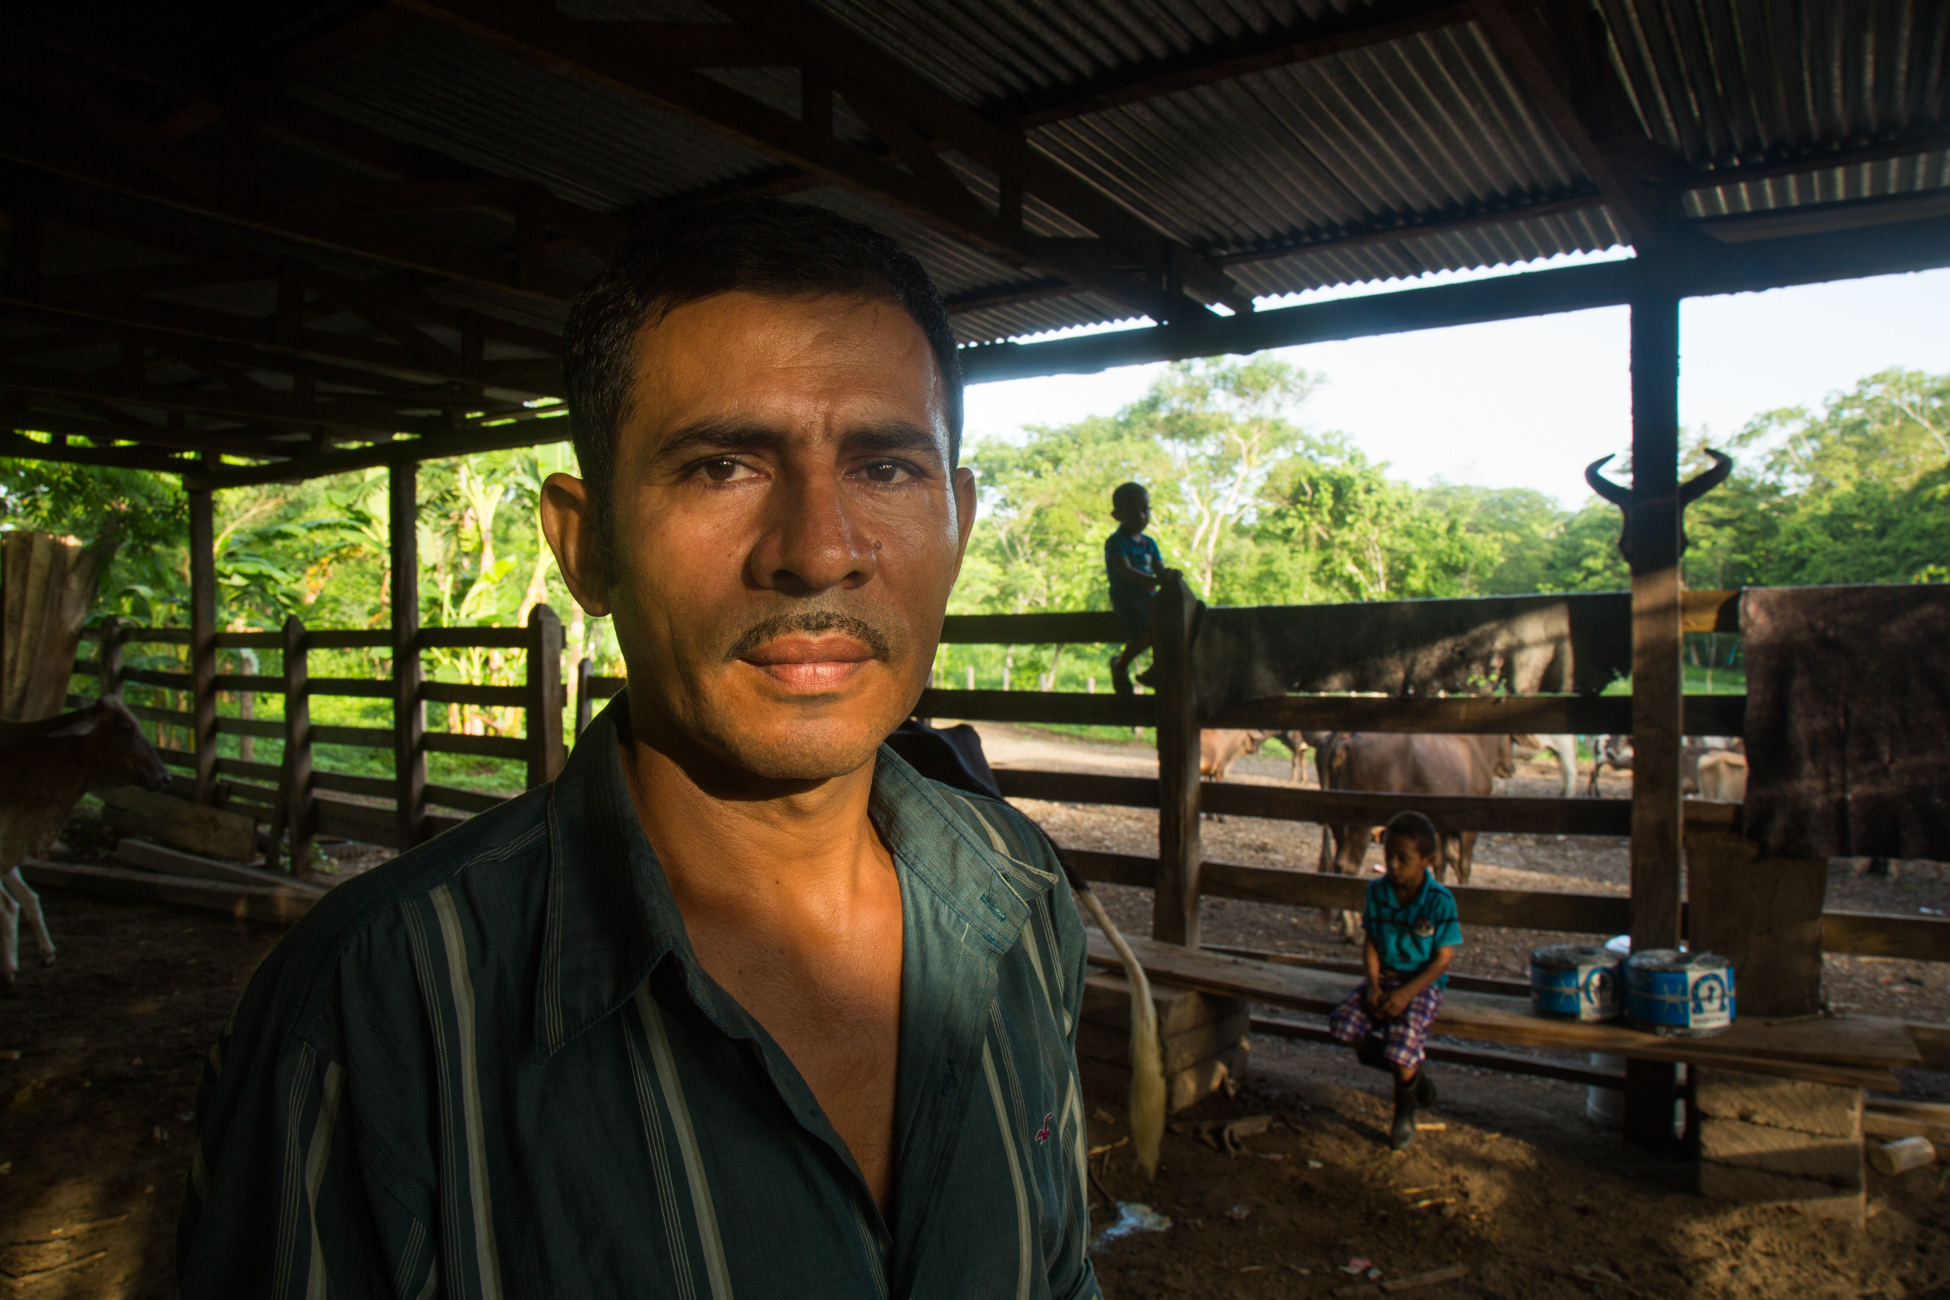 Javier Carmona teaches his youngest sons Bernni and Jelver to milk the cows the morning before a protest against the Nicaraguan Canal. Javier, a community leader and organizer with the Consejo Nacional which is fighting against the Ley 840 and the proposed Canal project by the governemnt in order to protect their land